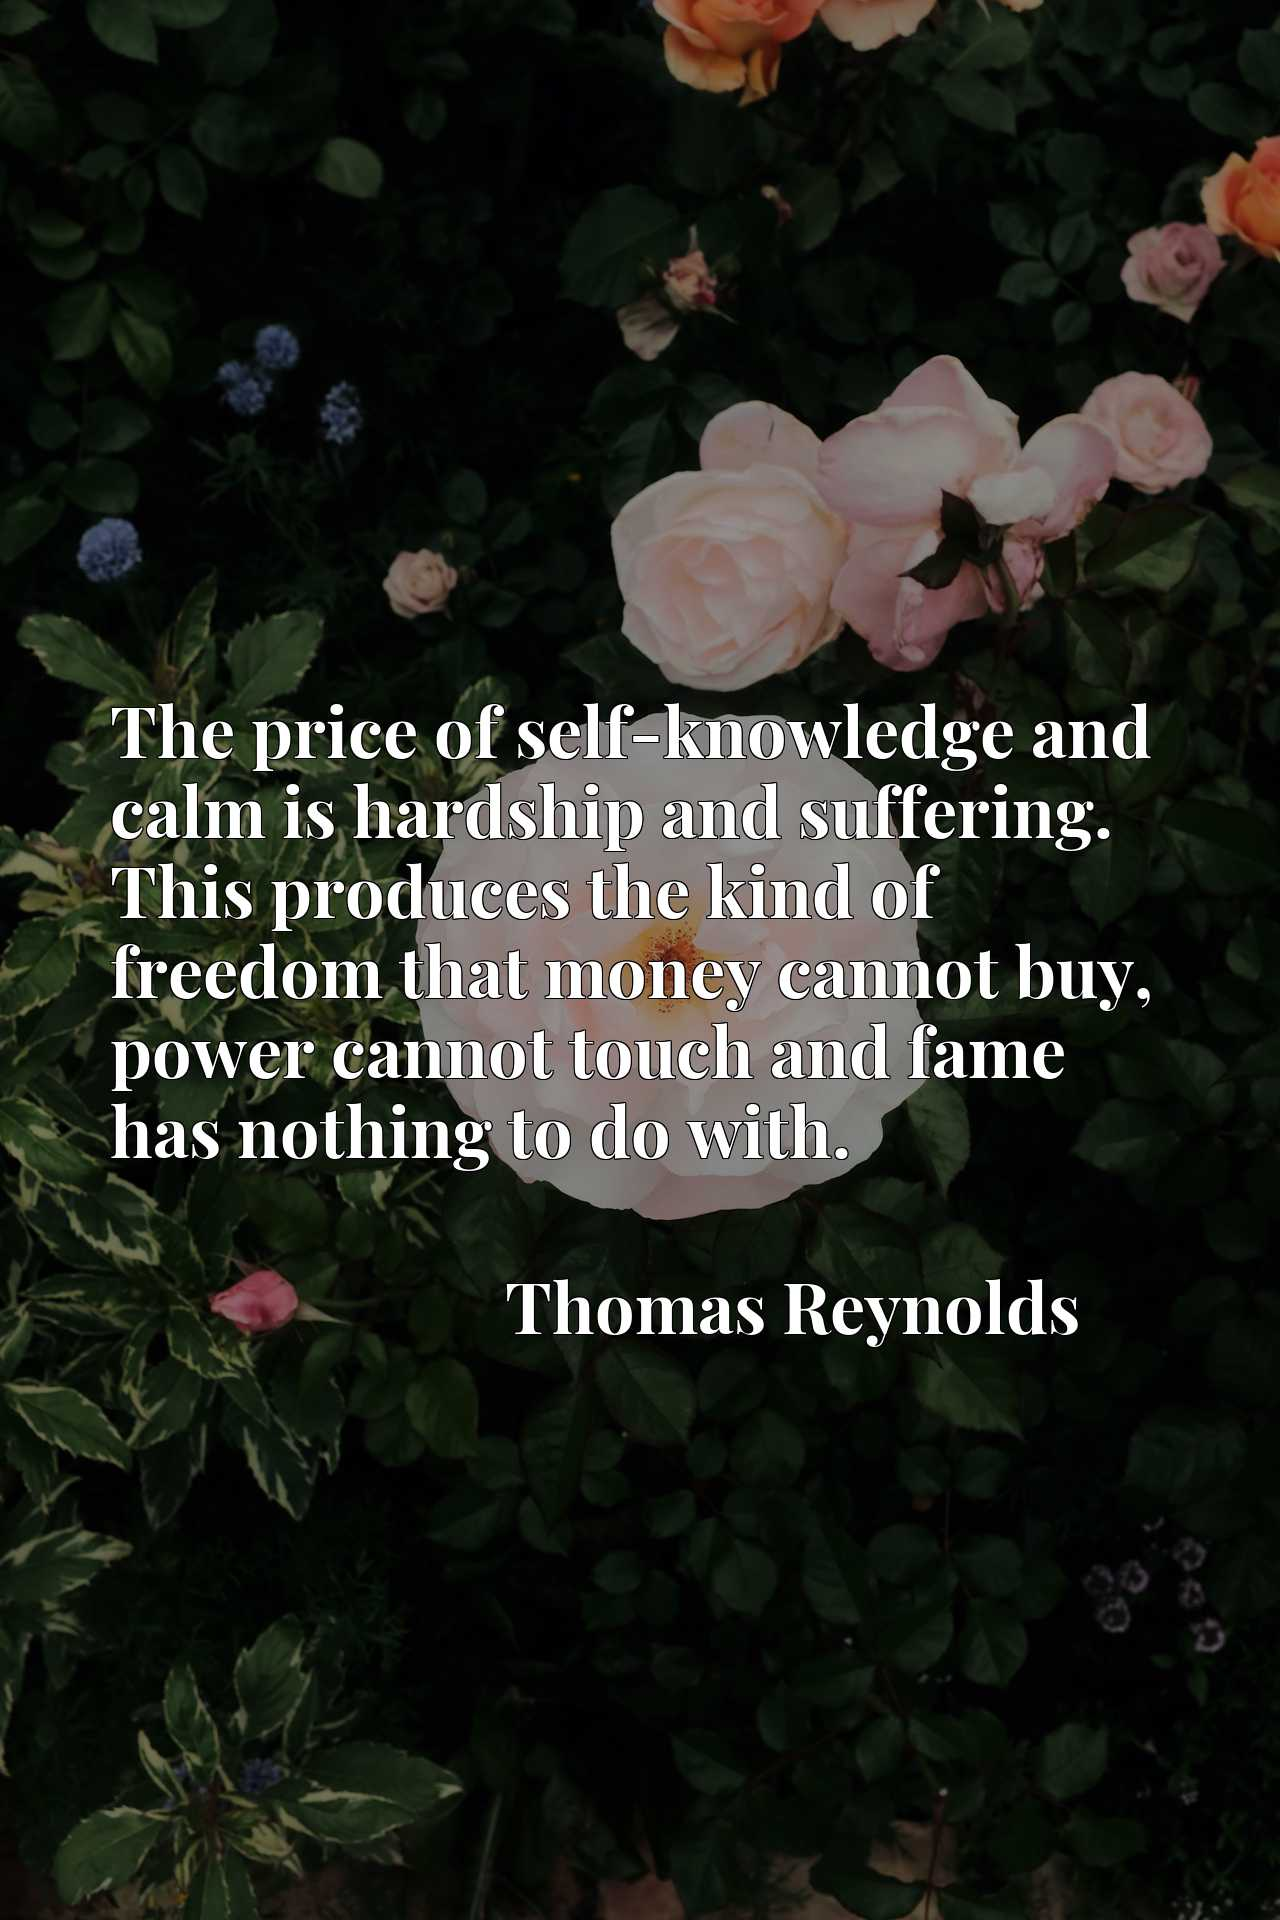 Quote Picture :The price of self-knowledge and calm is hardship and suffering. This produces the kind of freedom that money cannot buy, power cannot touch and fame has nothing to do with.